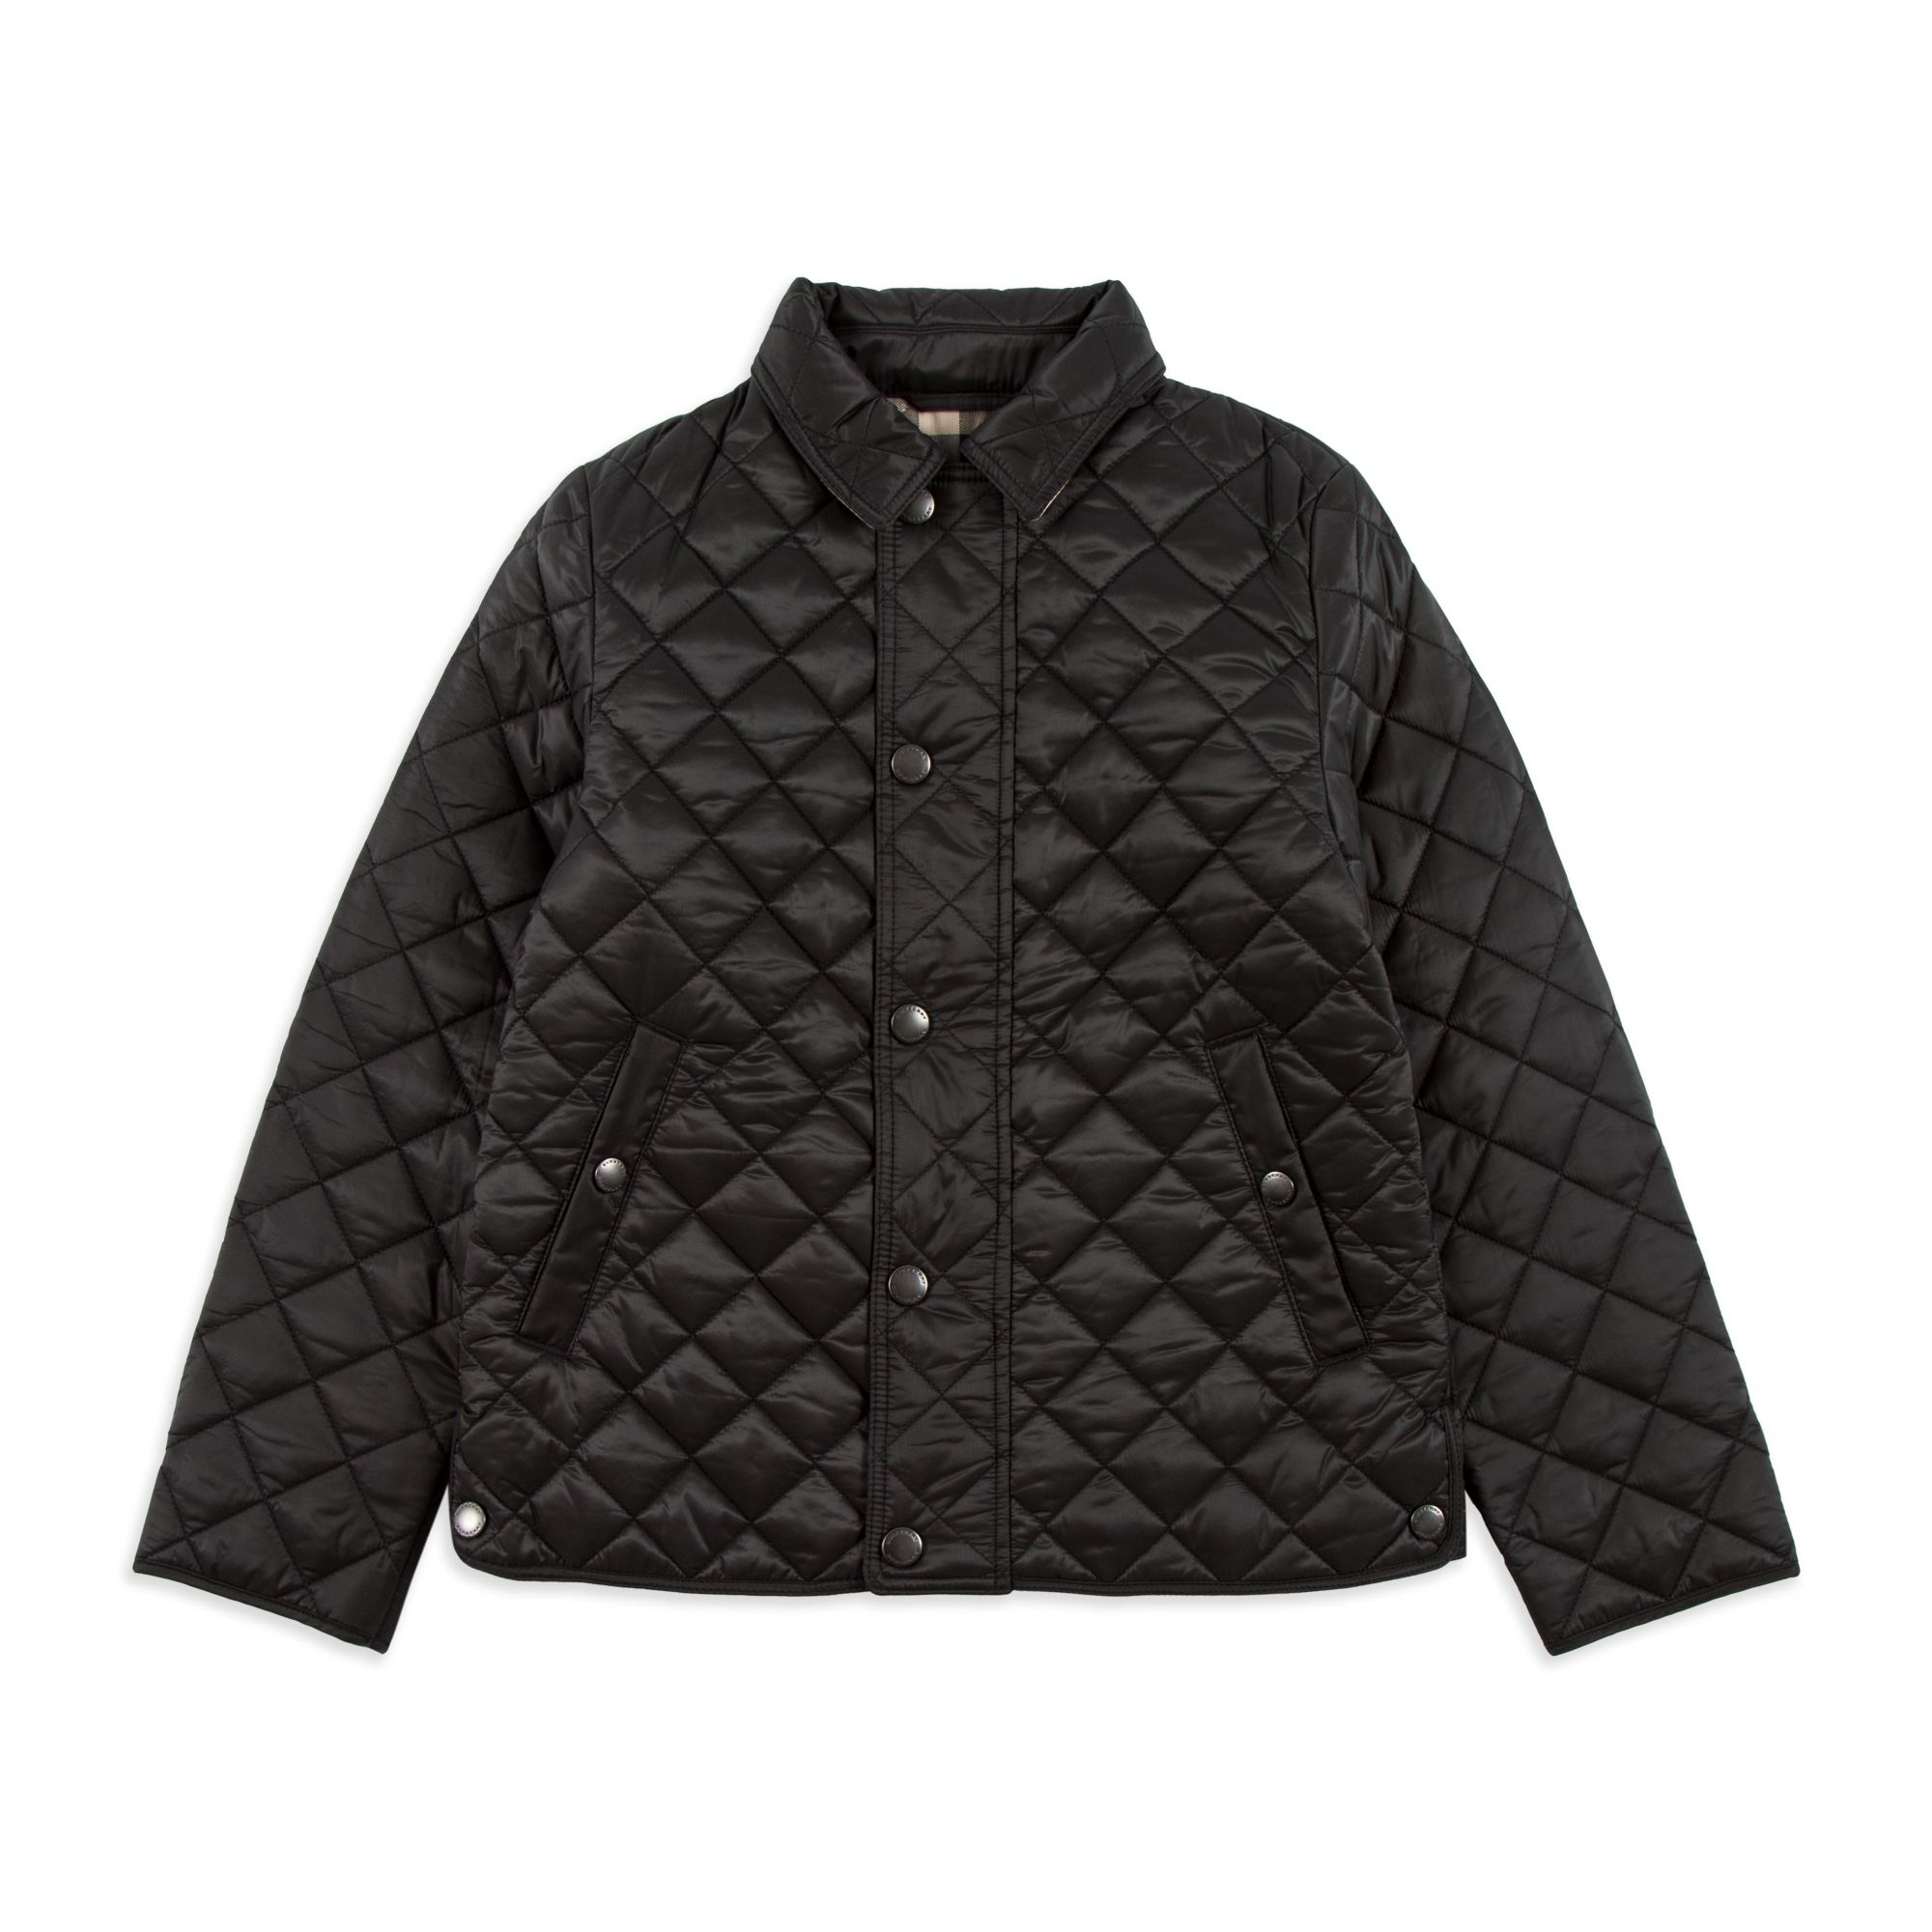 Burberry - Boys 'Luke' Jacket - Black - Boys quilted jacket, Soft ... : burberry quilted check trim coat - Adamdwight.com